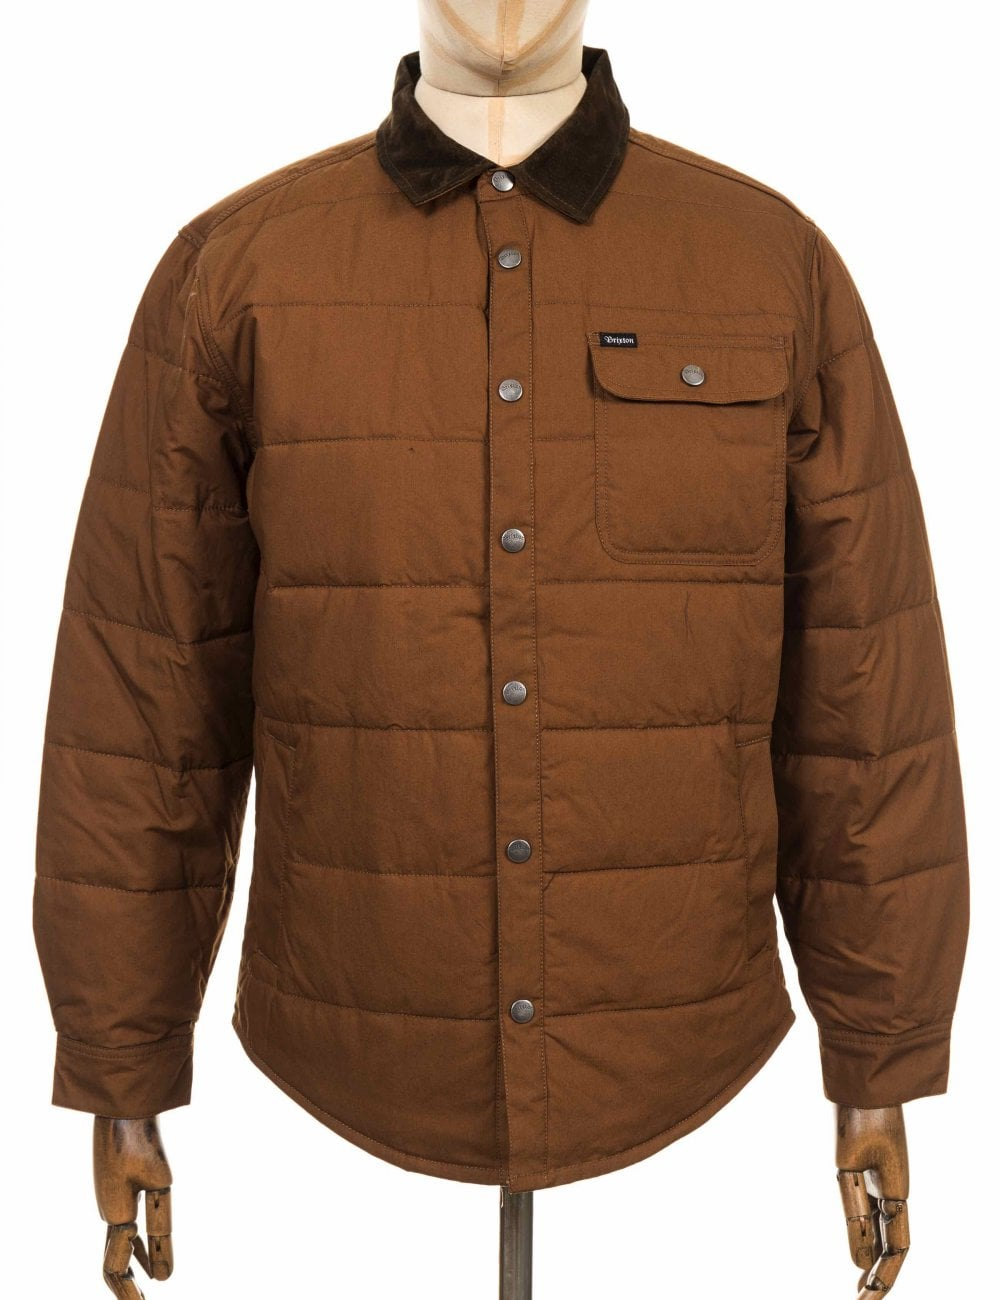 Brixton Cass Jacket - Sierra - Clothing from Fat Buddha Store UK ec2c4d011c6